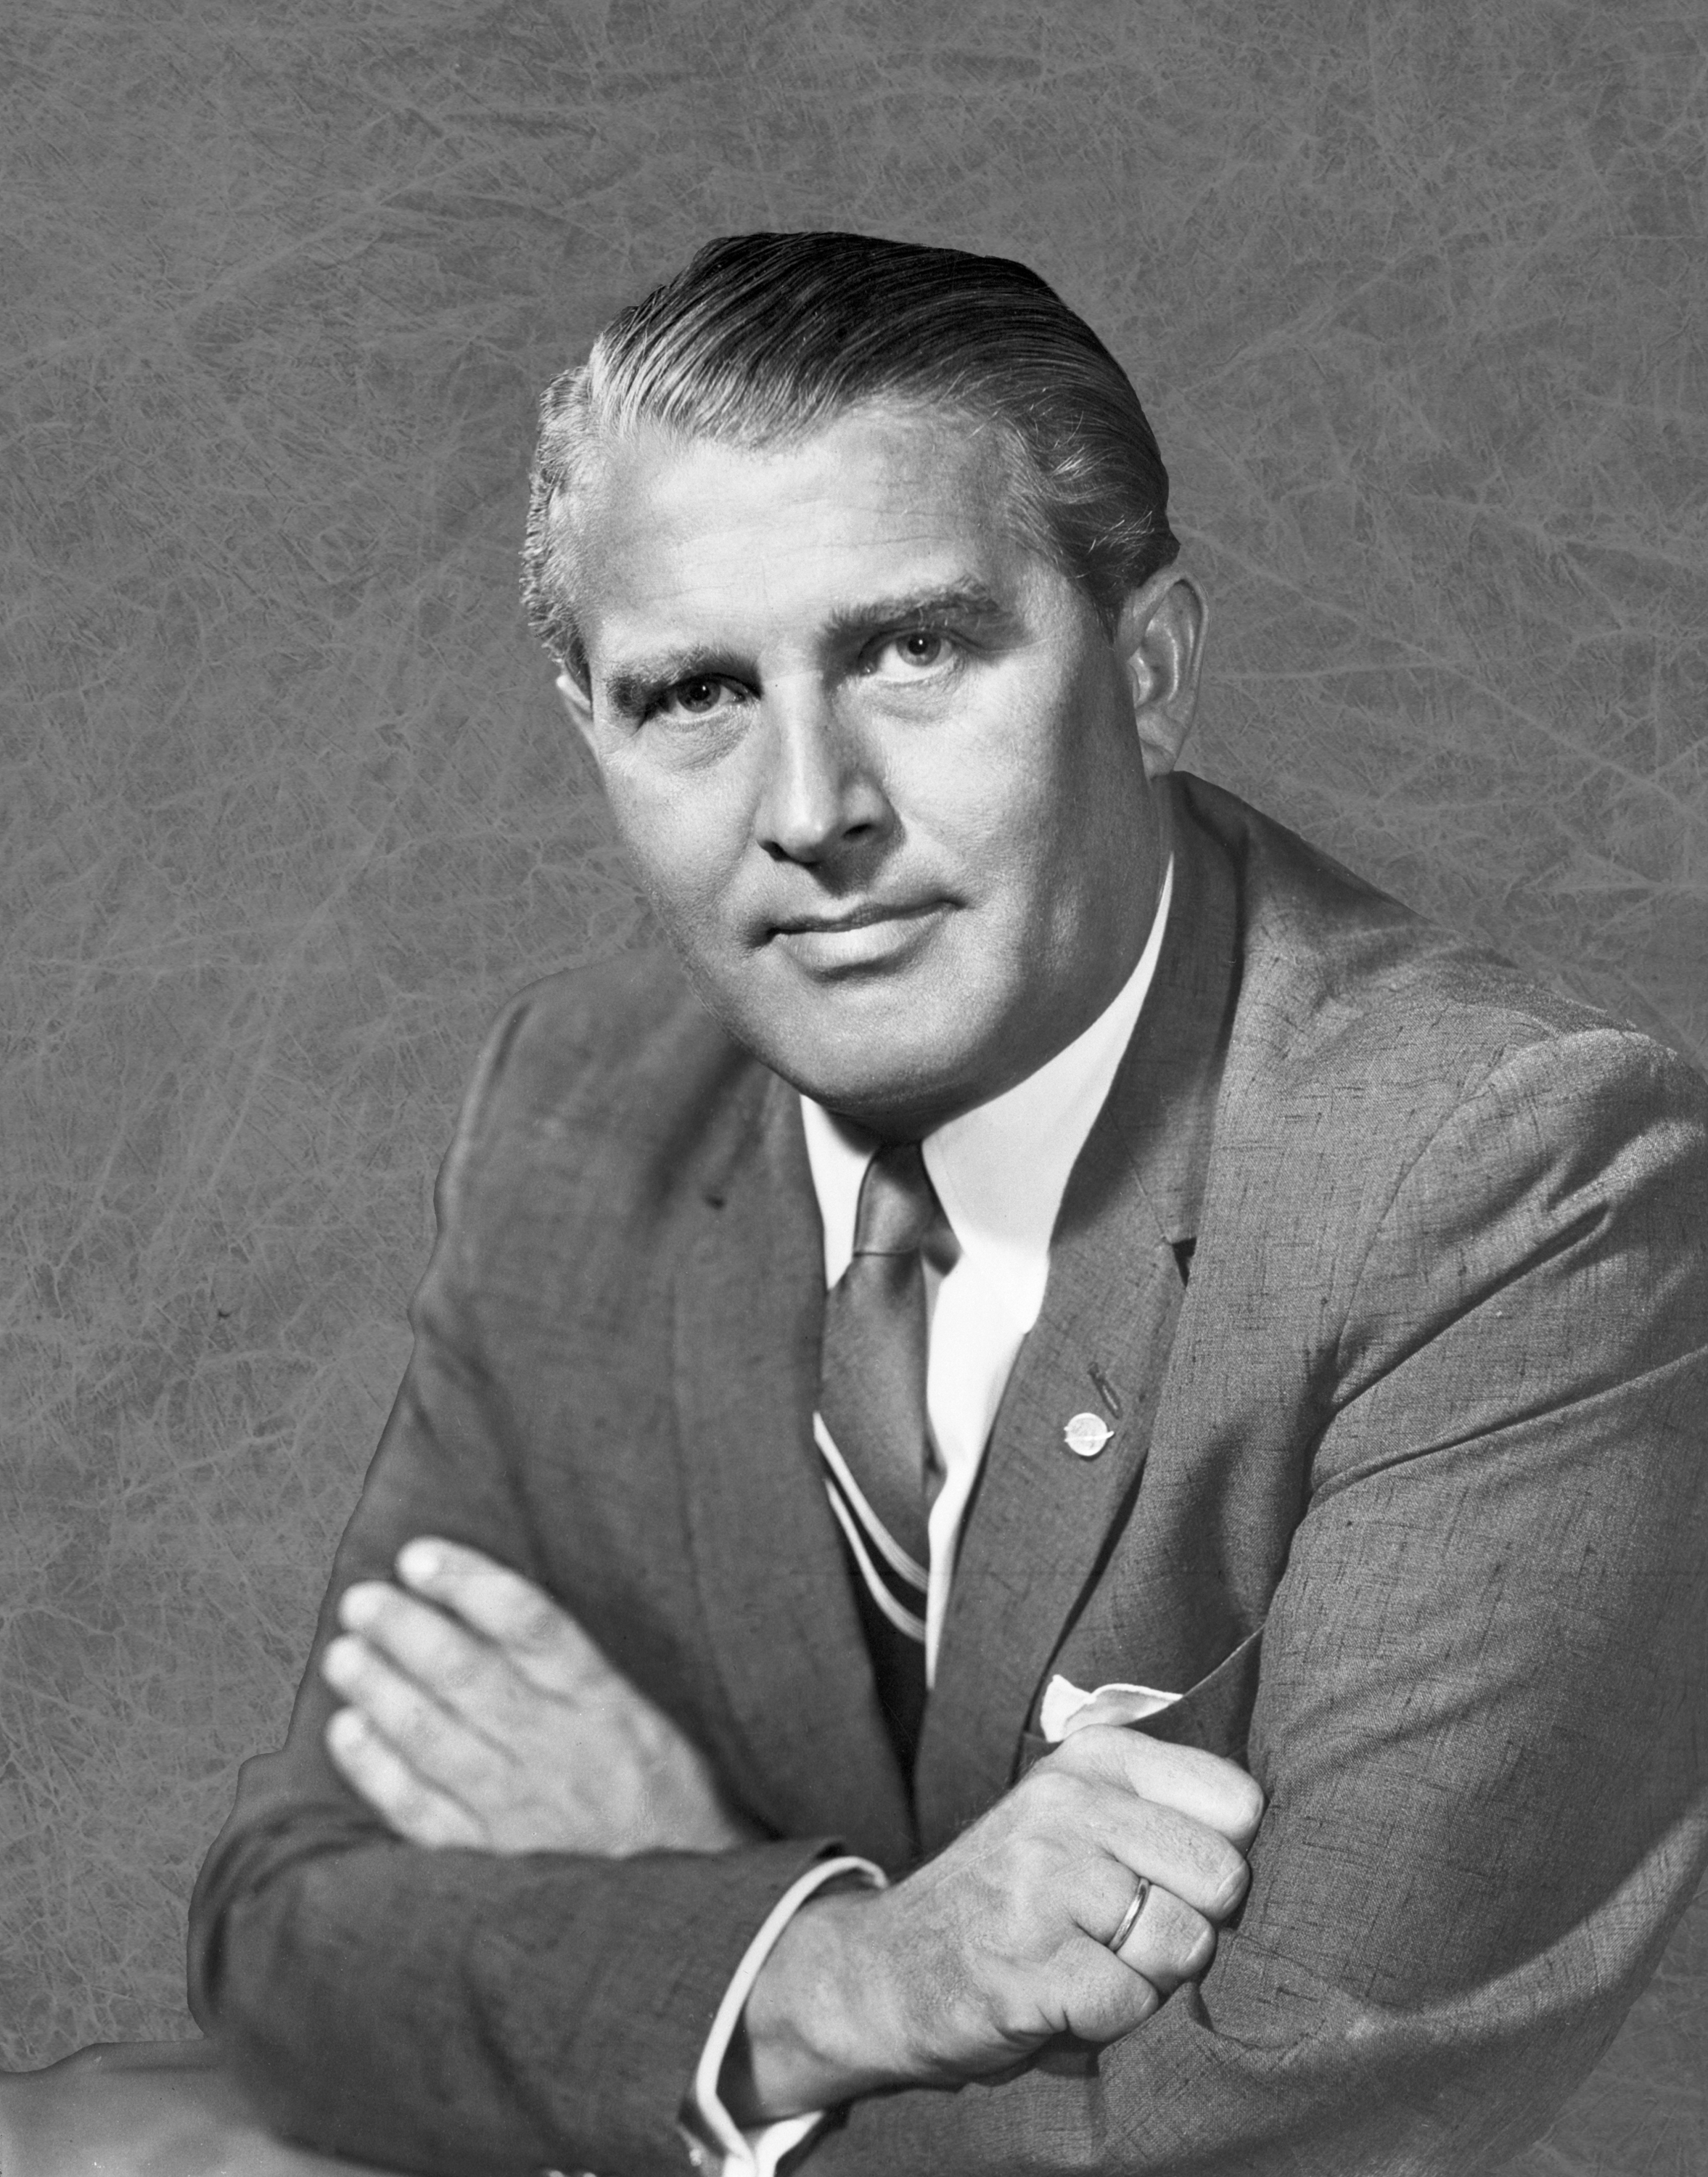 Wernher von Braun — Famous Legal Immigrant to America